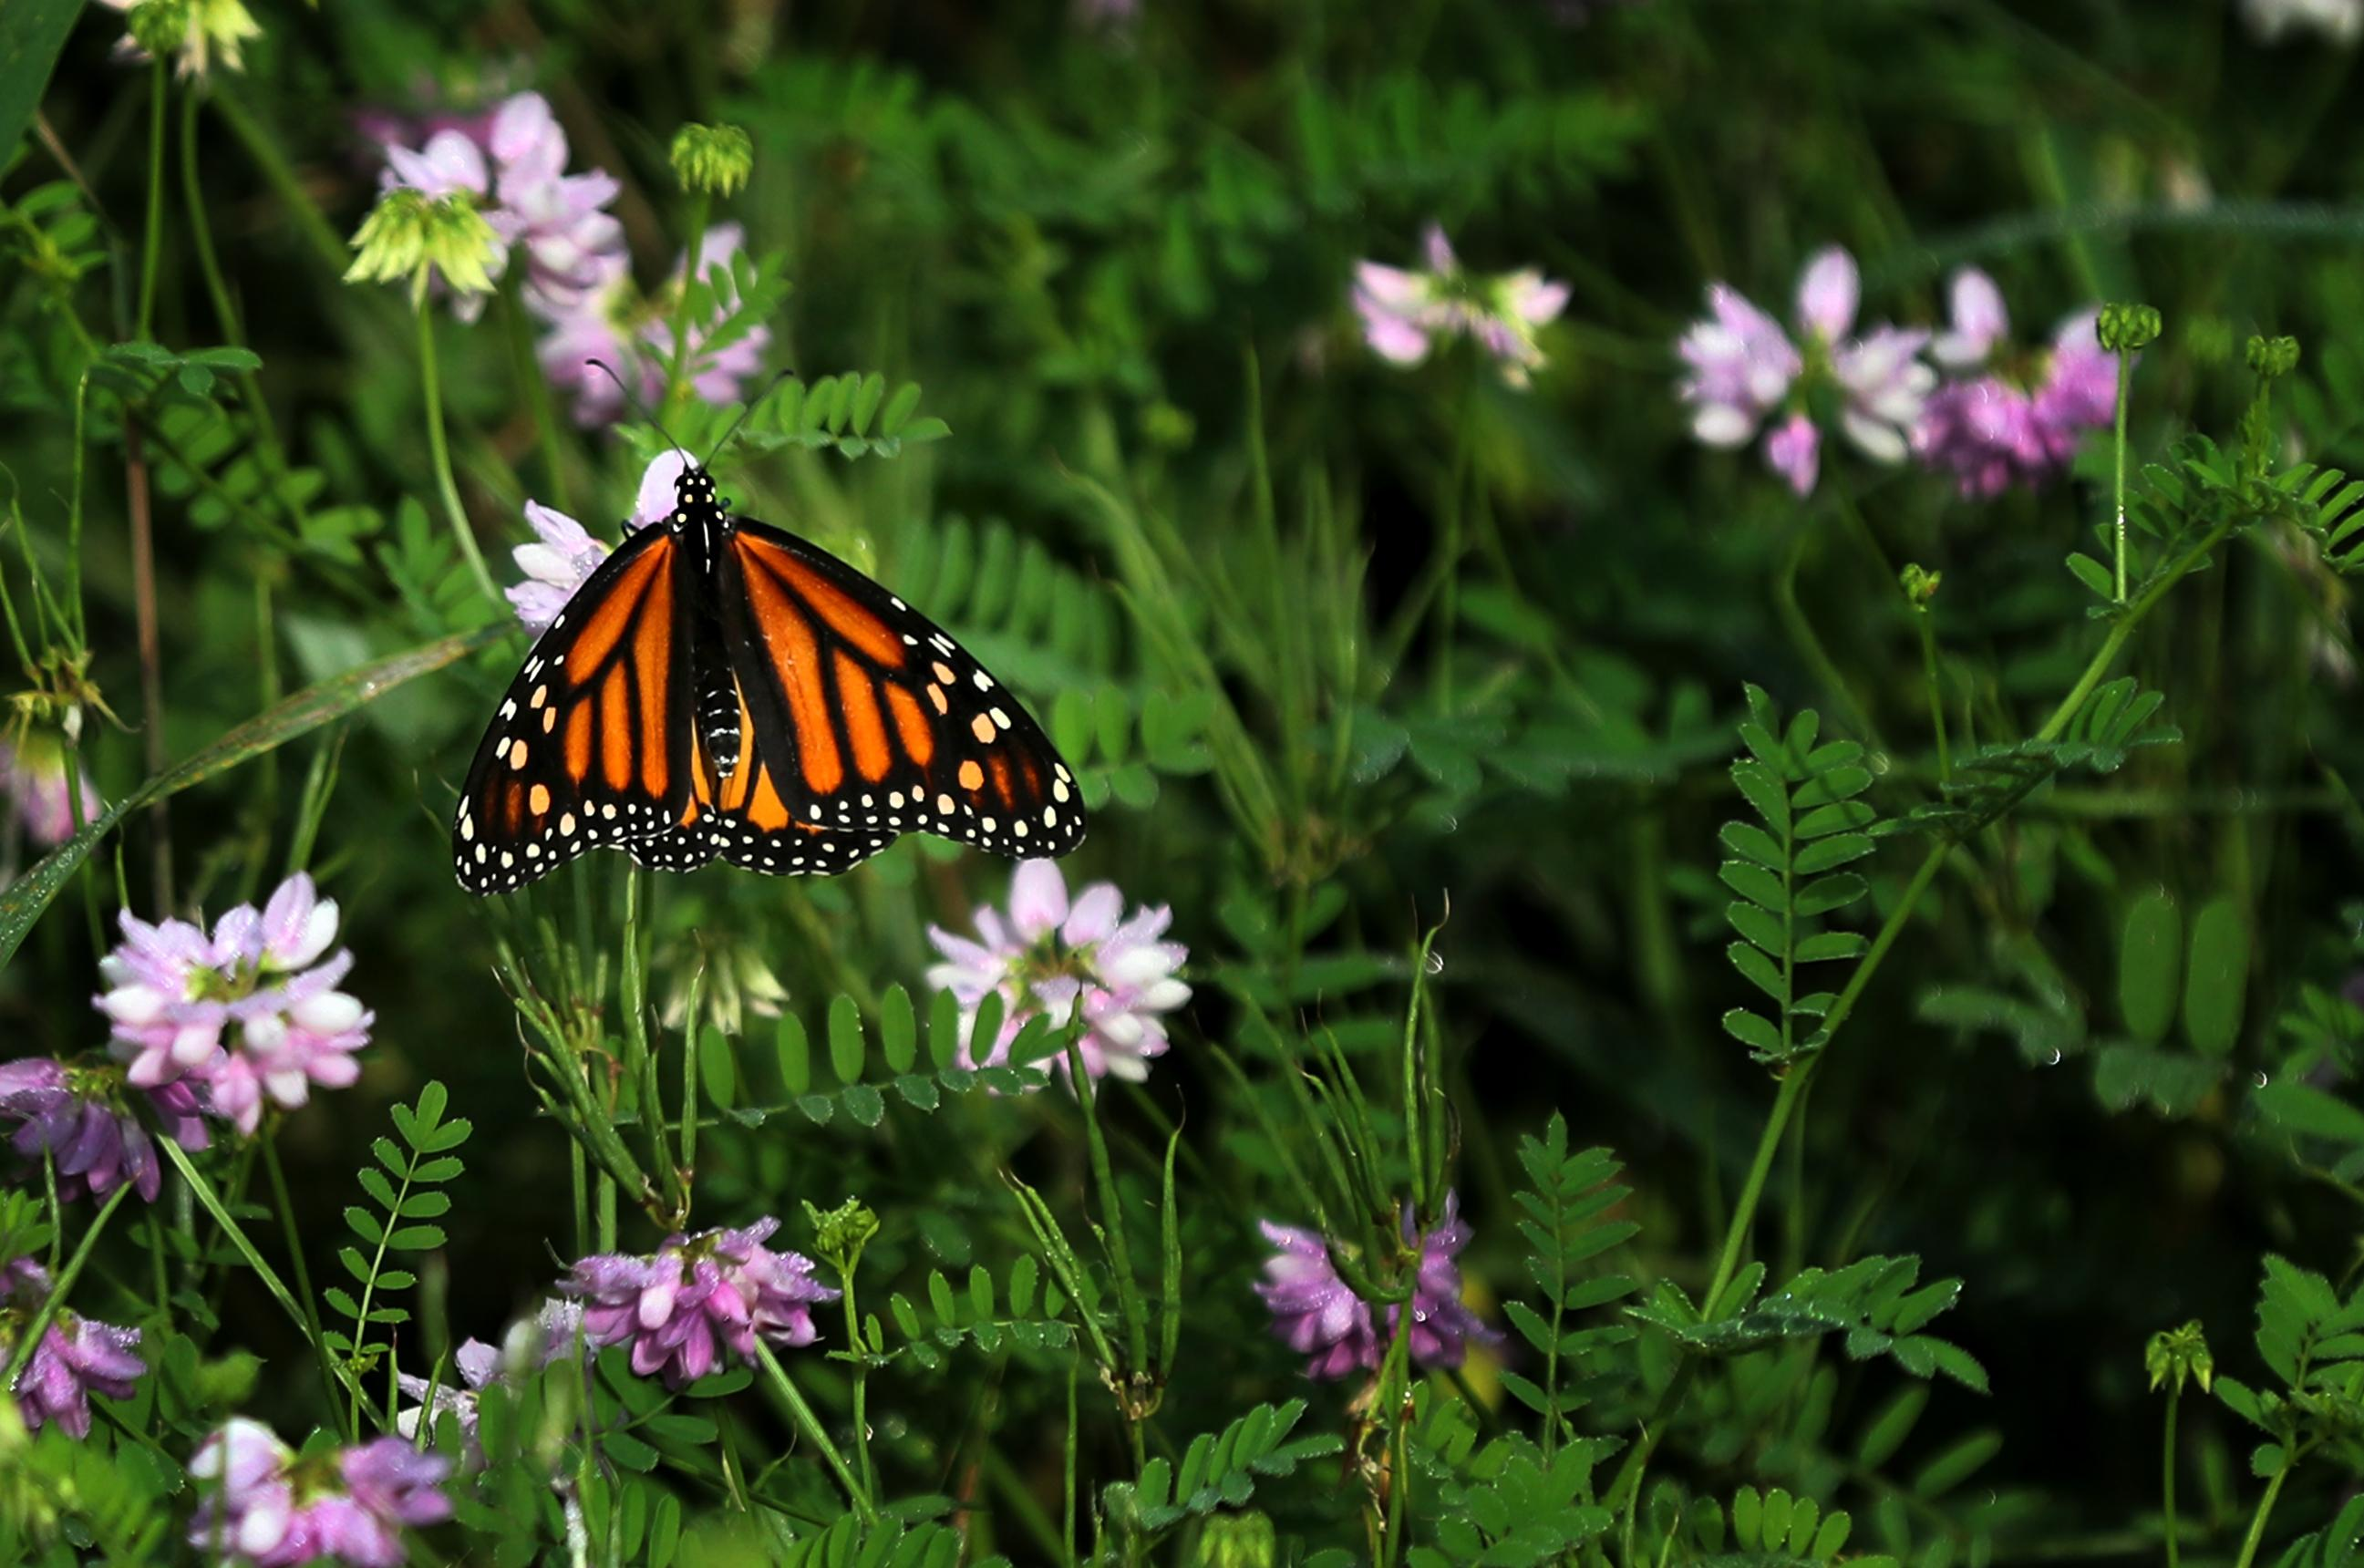 As monarch butterflies vanish, researchers investigate road